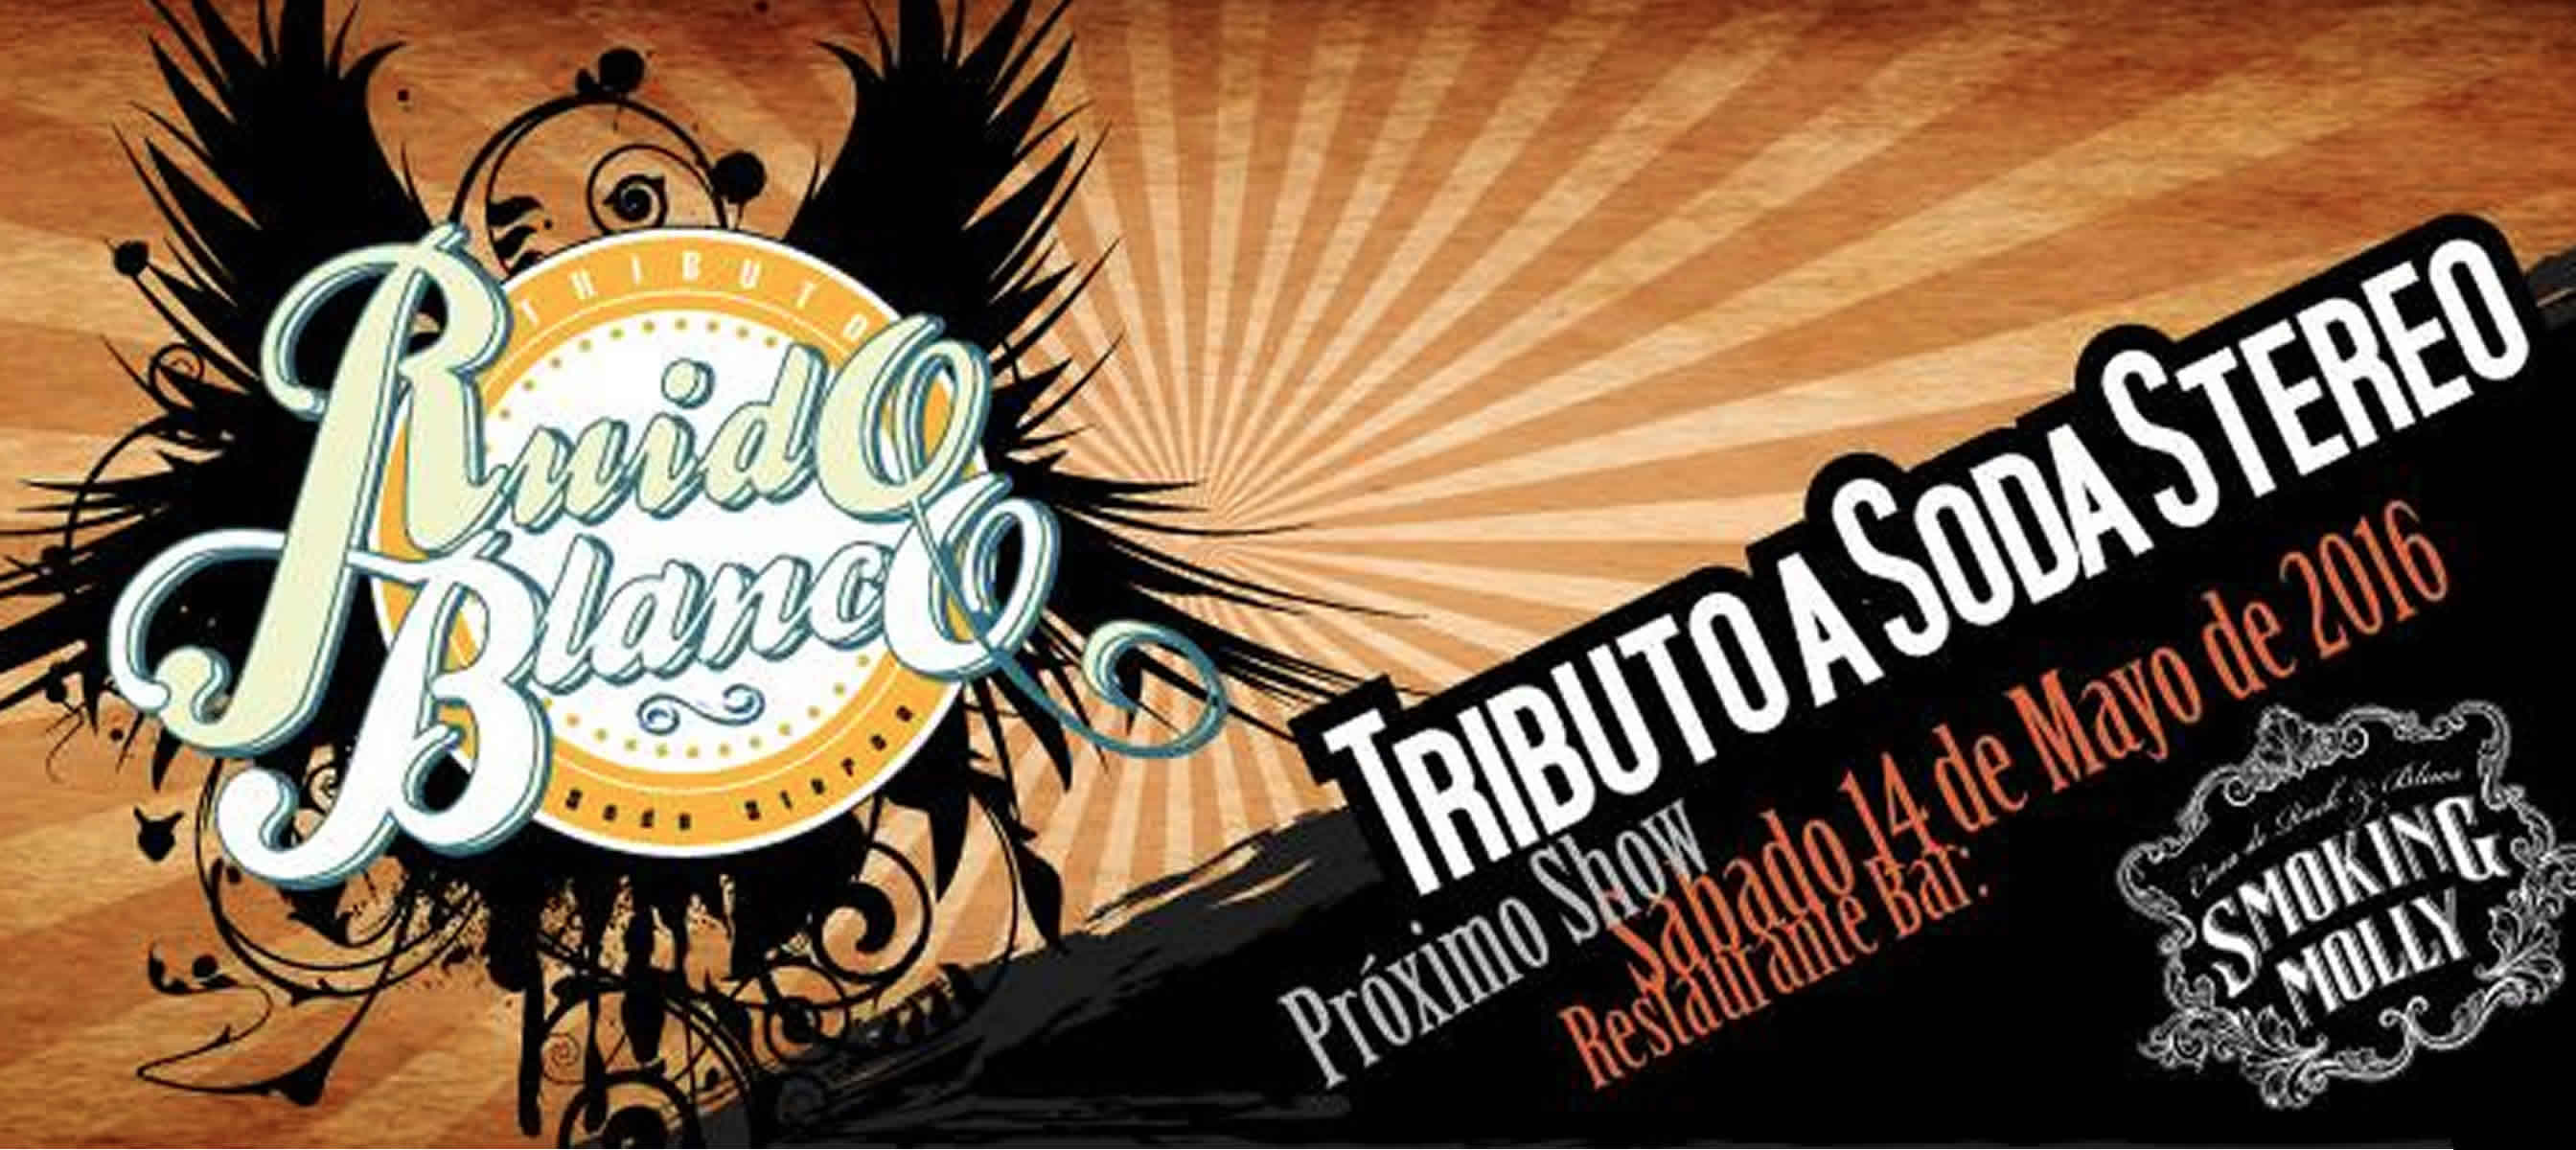 Tributo a Soda Stereo por la banda Ruido Blanco en Smoking Molly